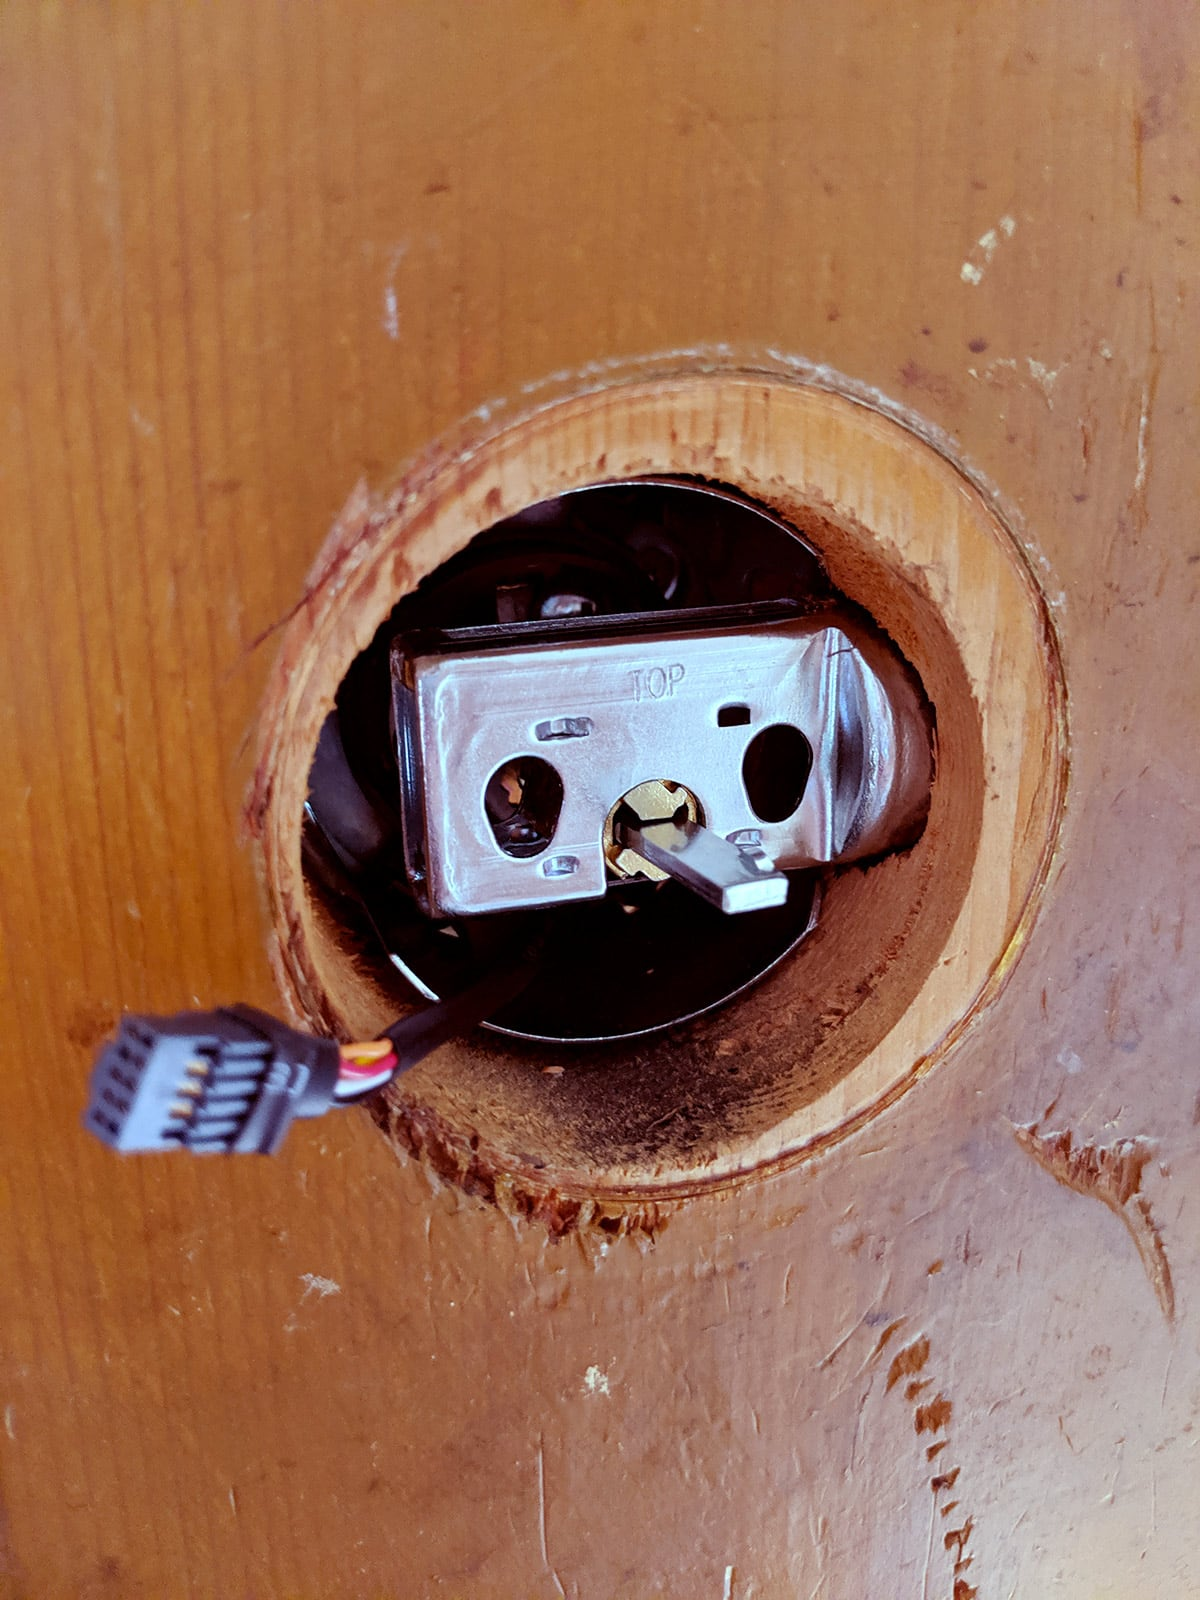 For those that have installed deadbolt locks before, the only notable difference for Schlage's digital door lock is the one wire that connects both sides of the lock.